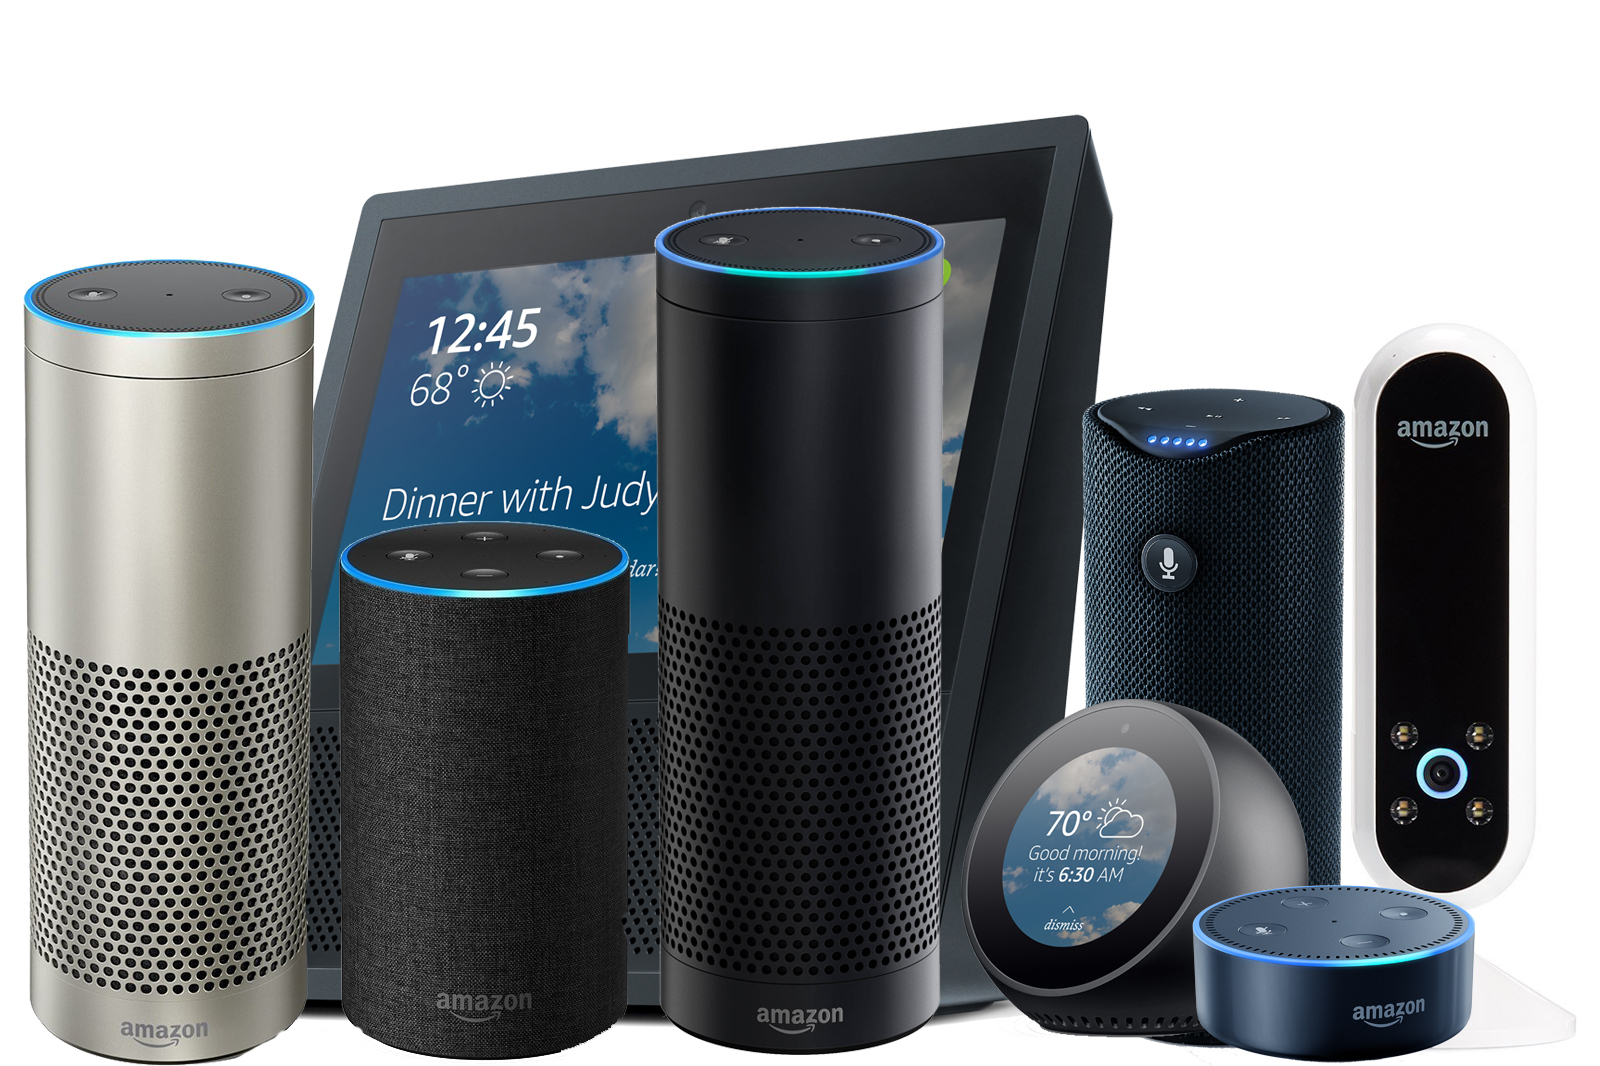 A boatload of Amazon Alexa devices